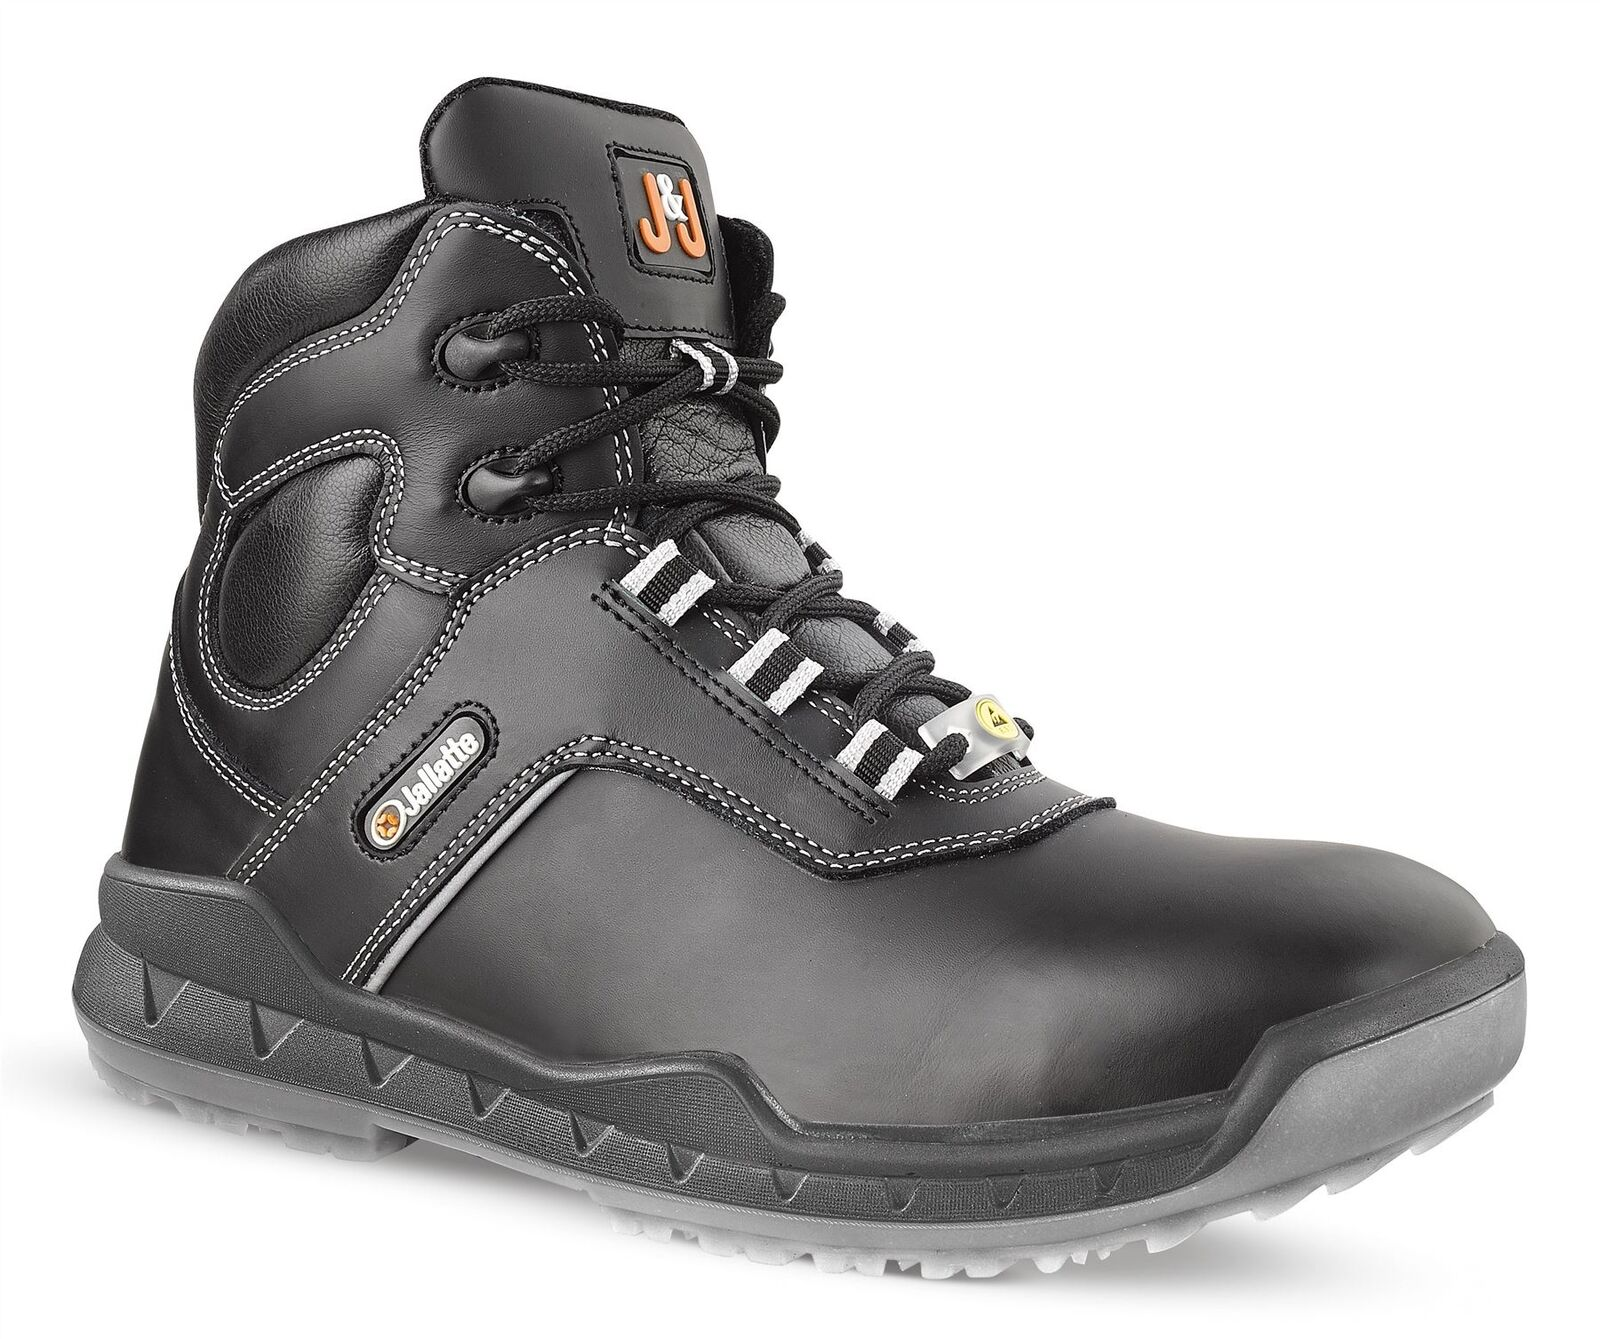 Jallatte Jallune JEJ14 S3 Black Mens Leather Safety Toecap Work Boots Size